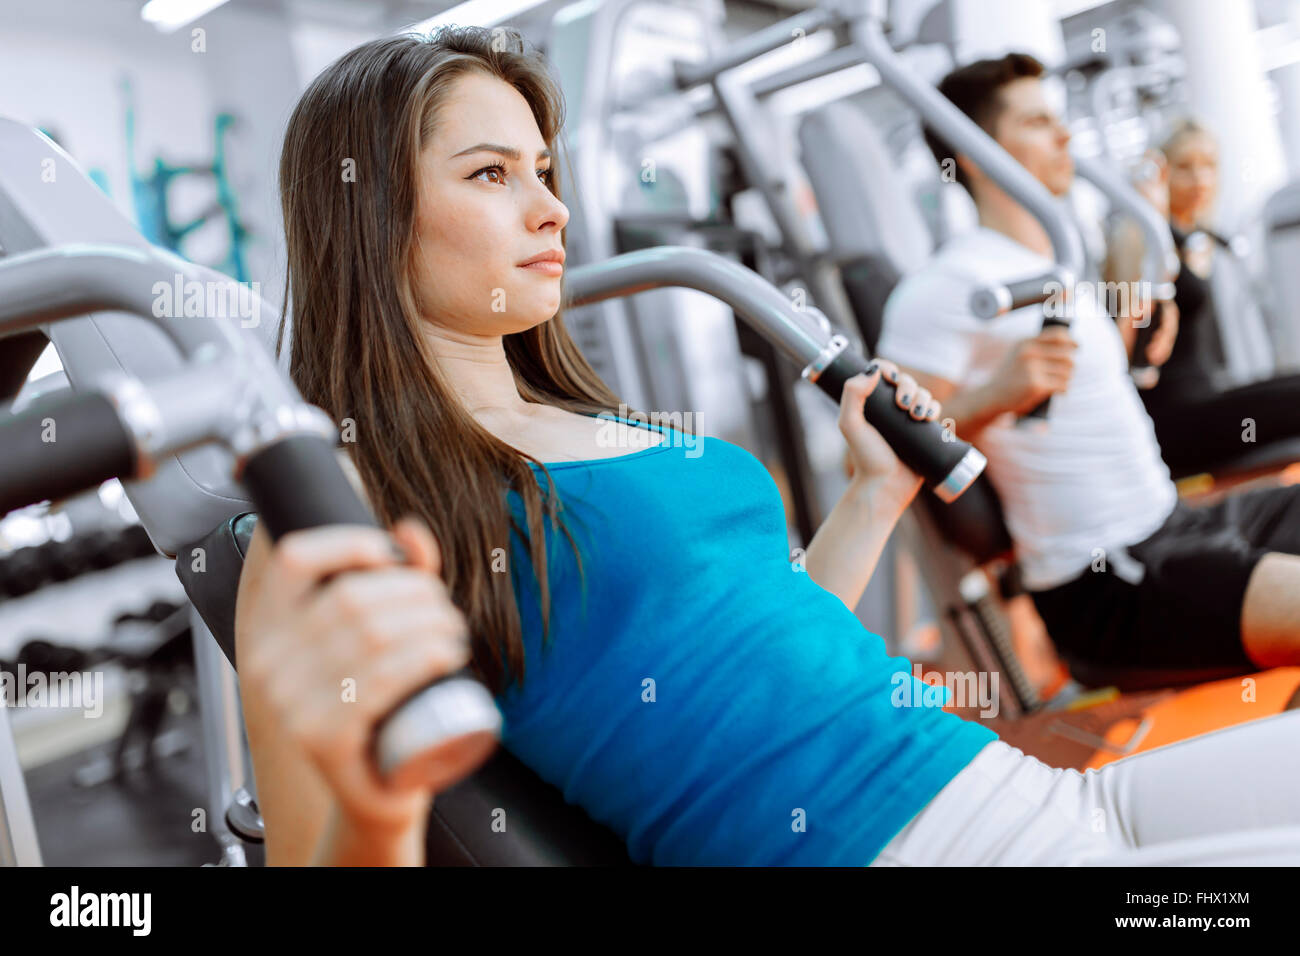 People exercising in gym on various machines - Stock Image